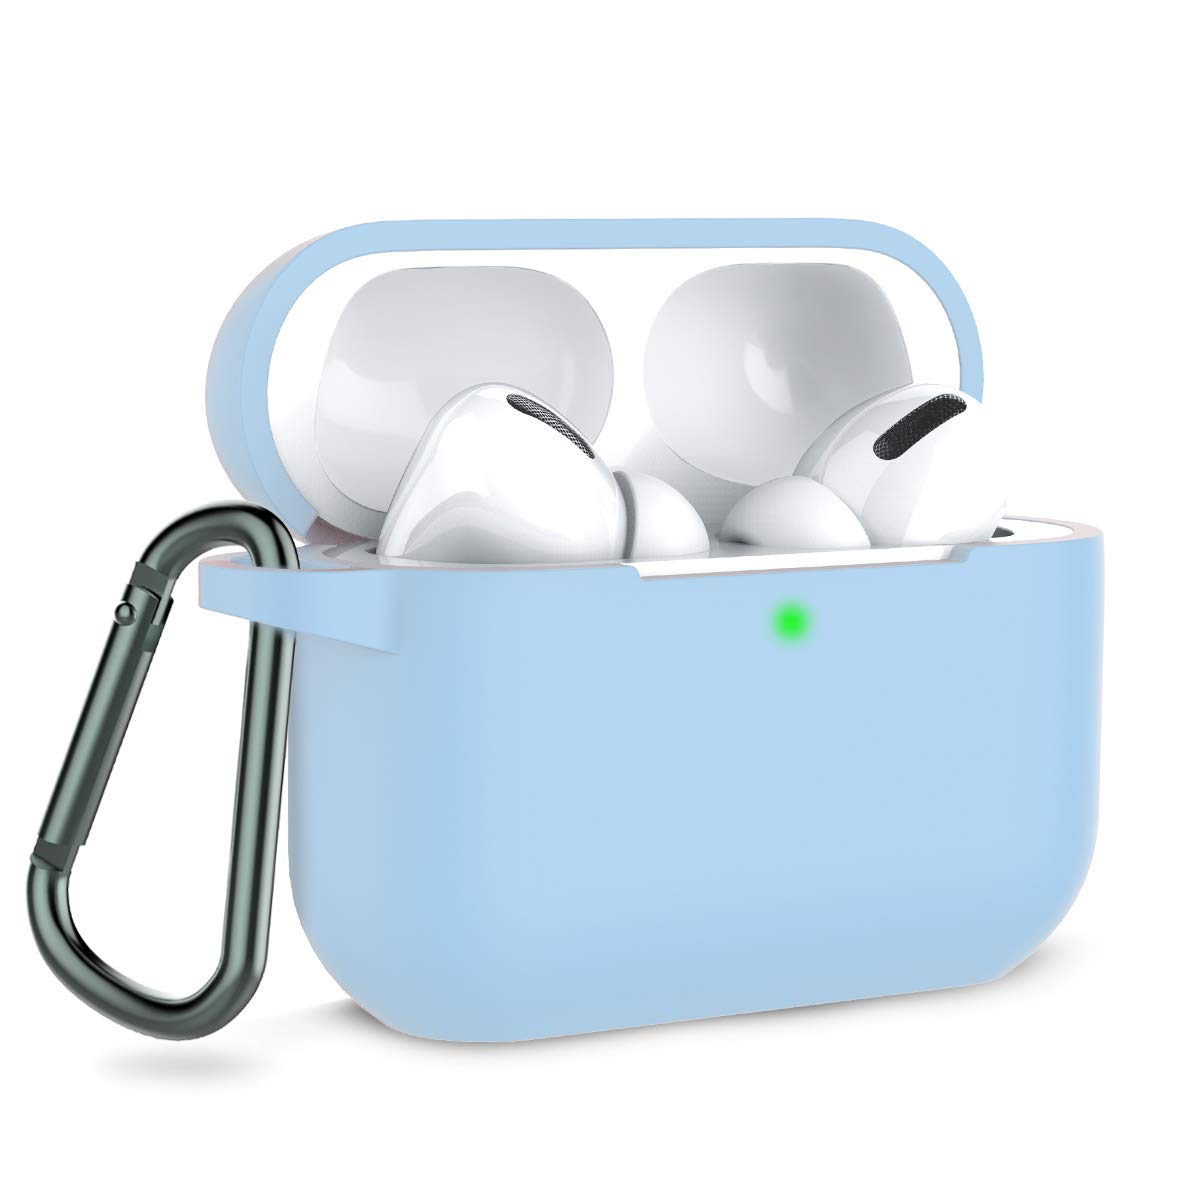 Coffea AirPods Pro Case with Keychain, AirPods 3 Protective Cover Silicone Case for AirPods Pro Charging Case (Front LED Visible) (Sky Blue)